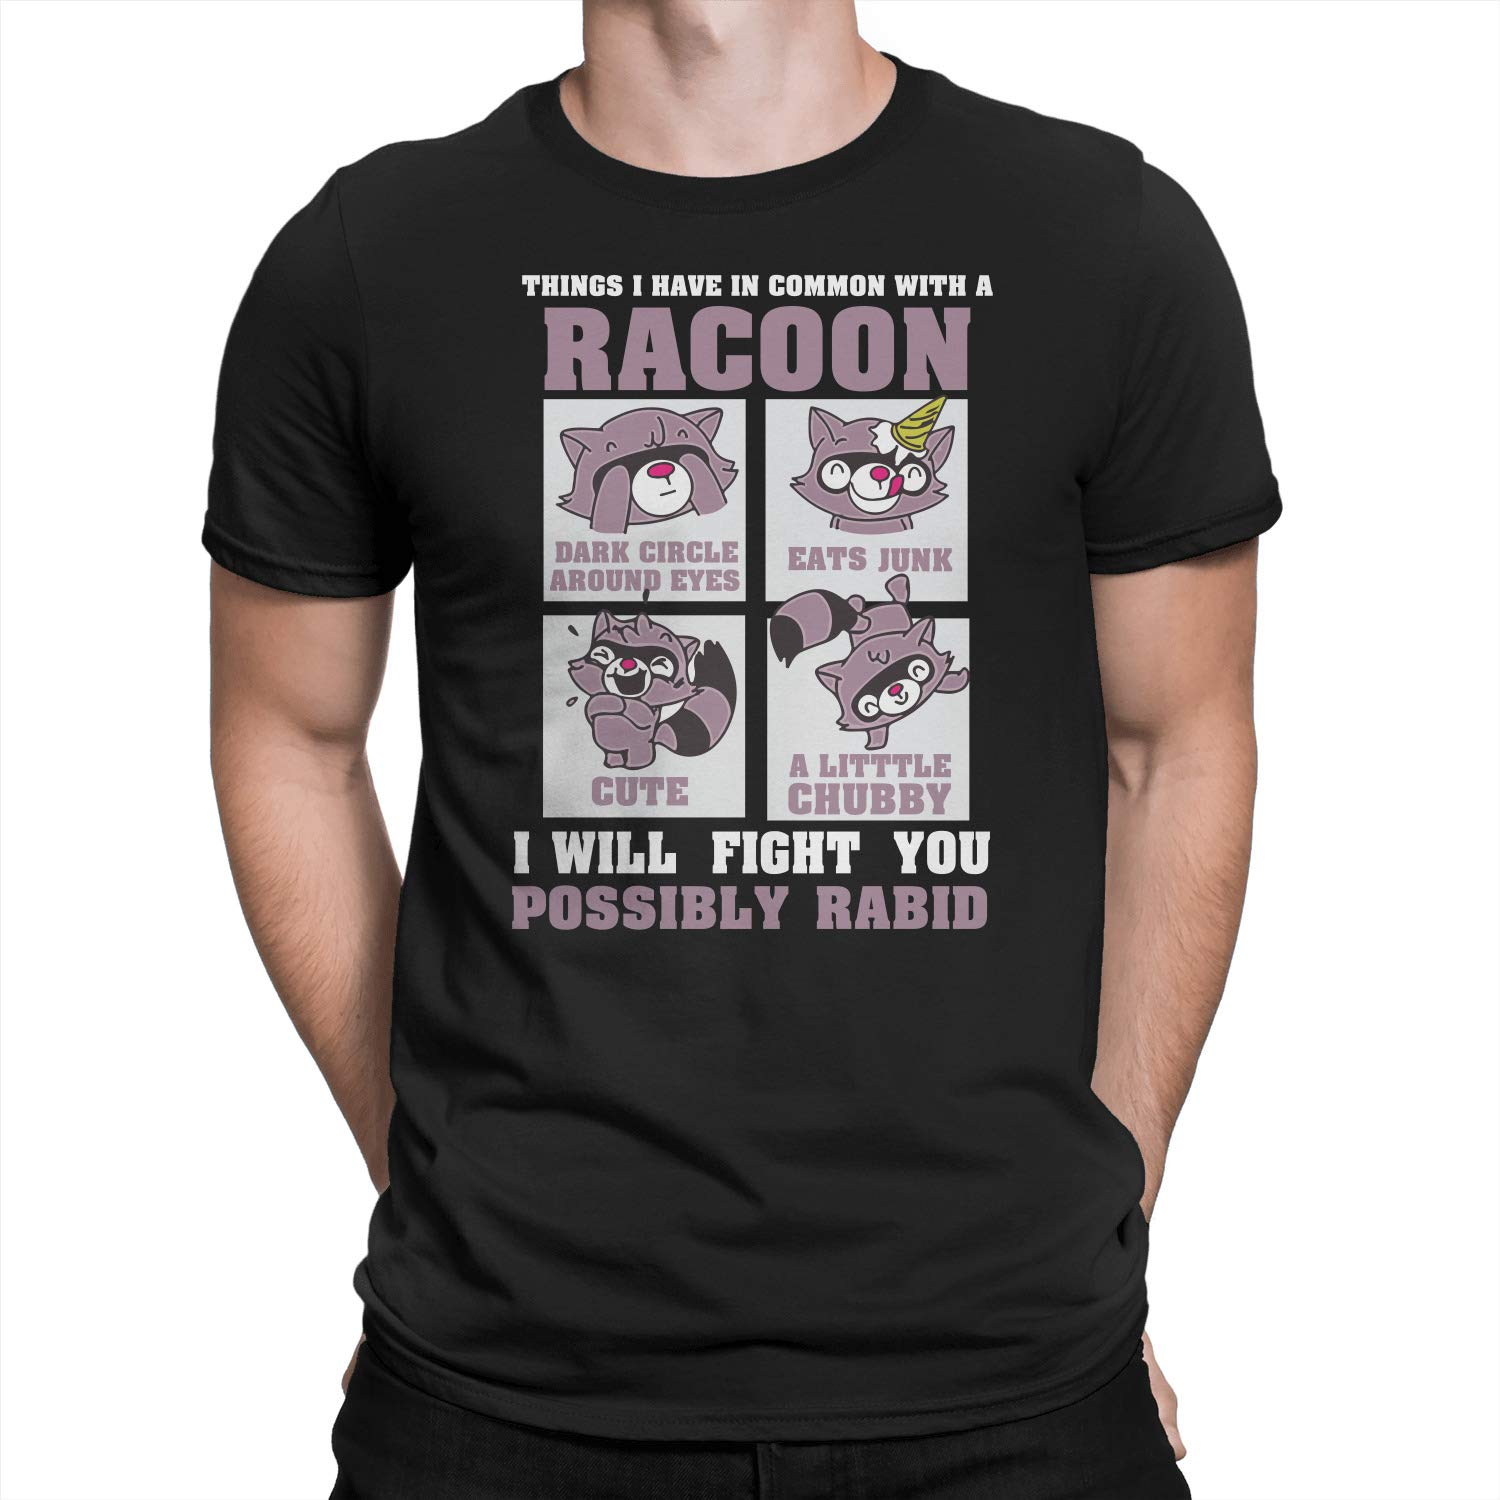 Things I Have in Common with A Raccoon T-Shirt